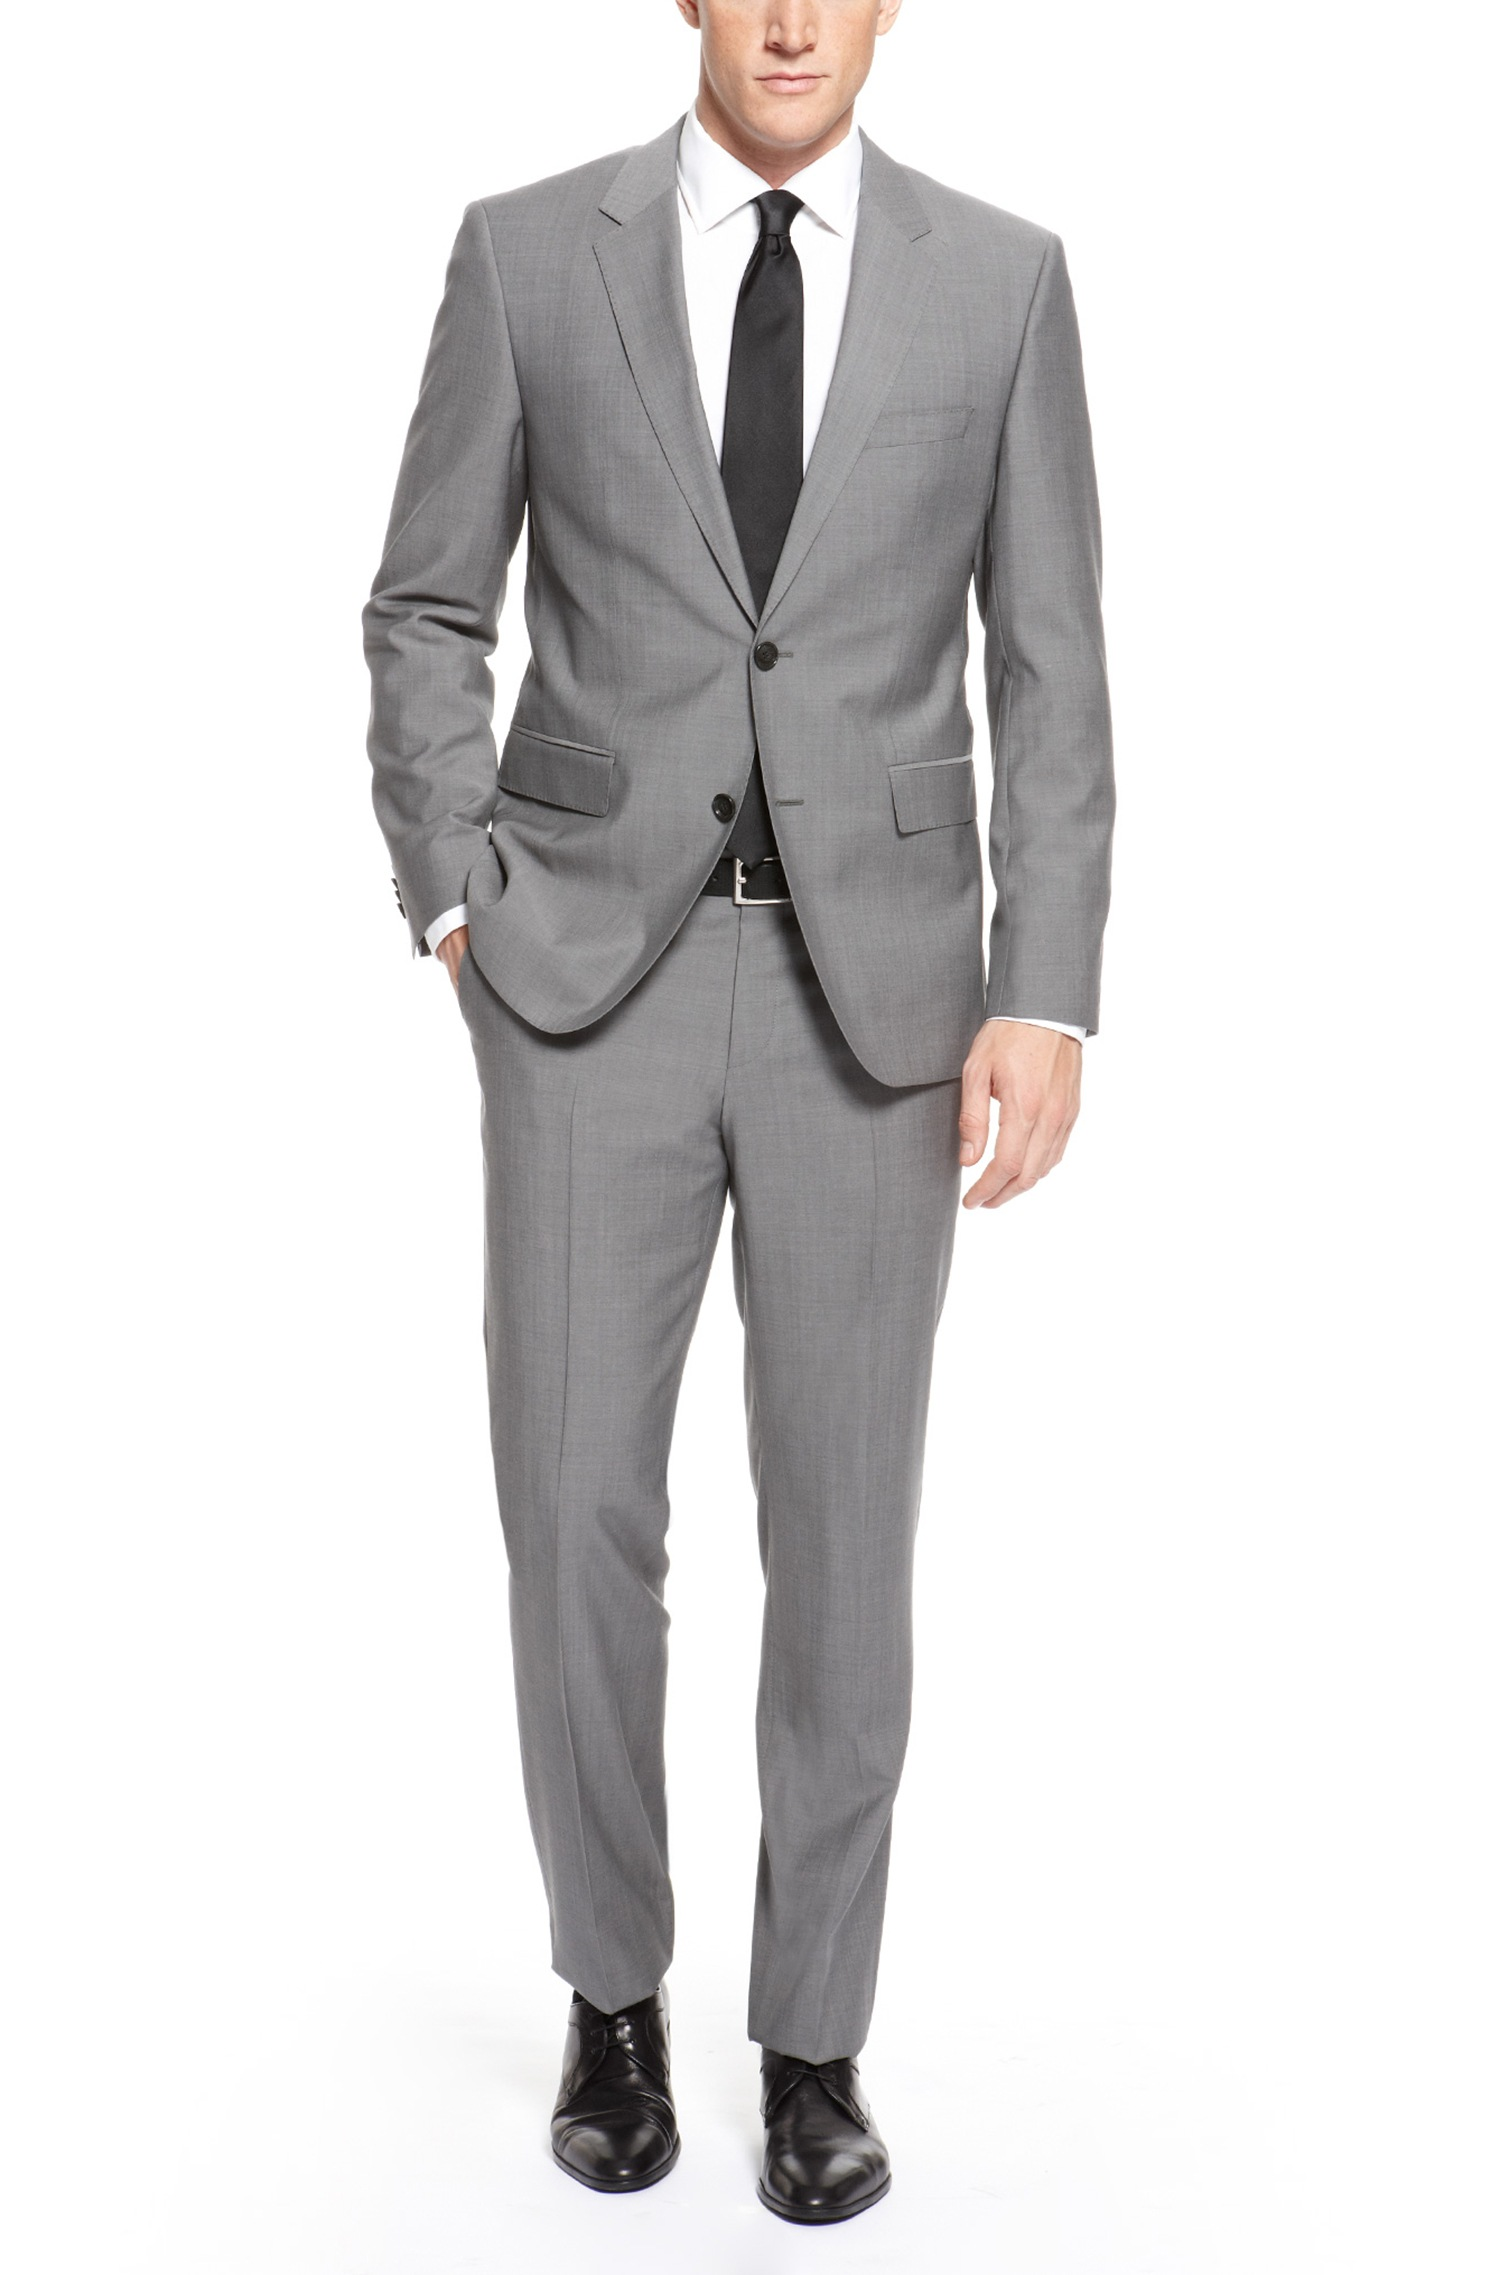 Hugo Boss 'The James/Sharp' | Regular Fit, Super 120 Italian Virgin Wool Suit by BOSS | Hugo Boss Suits